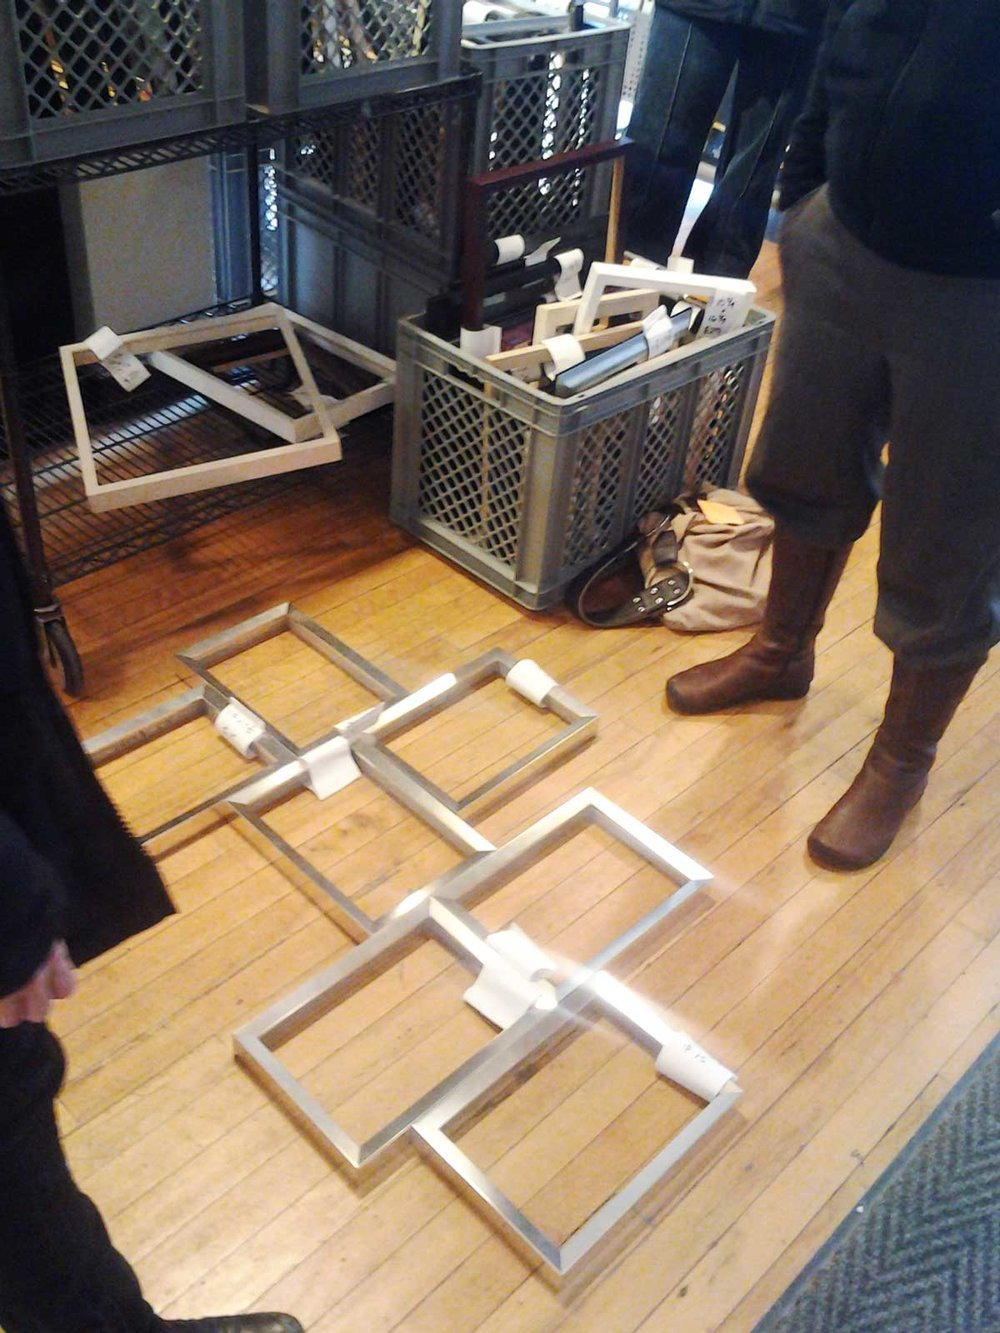 One of our framing consultants helping a customer lay out frames in the perfect design.